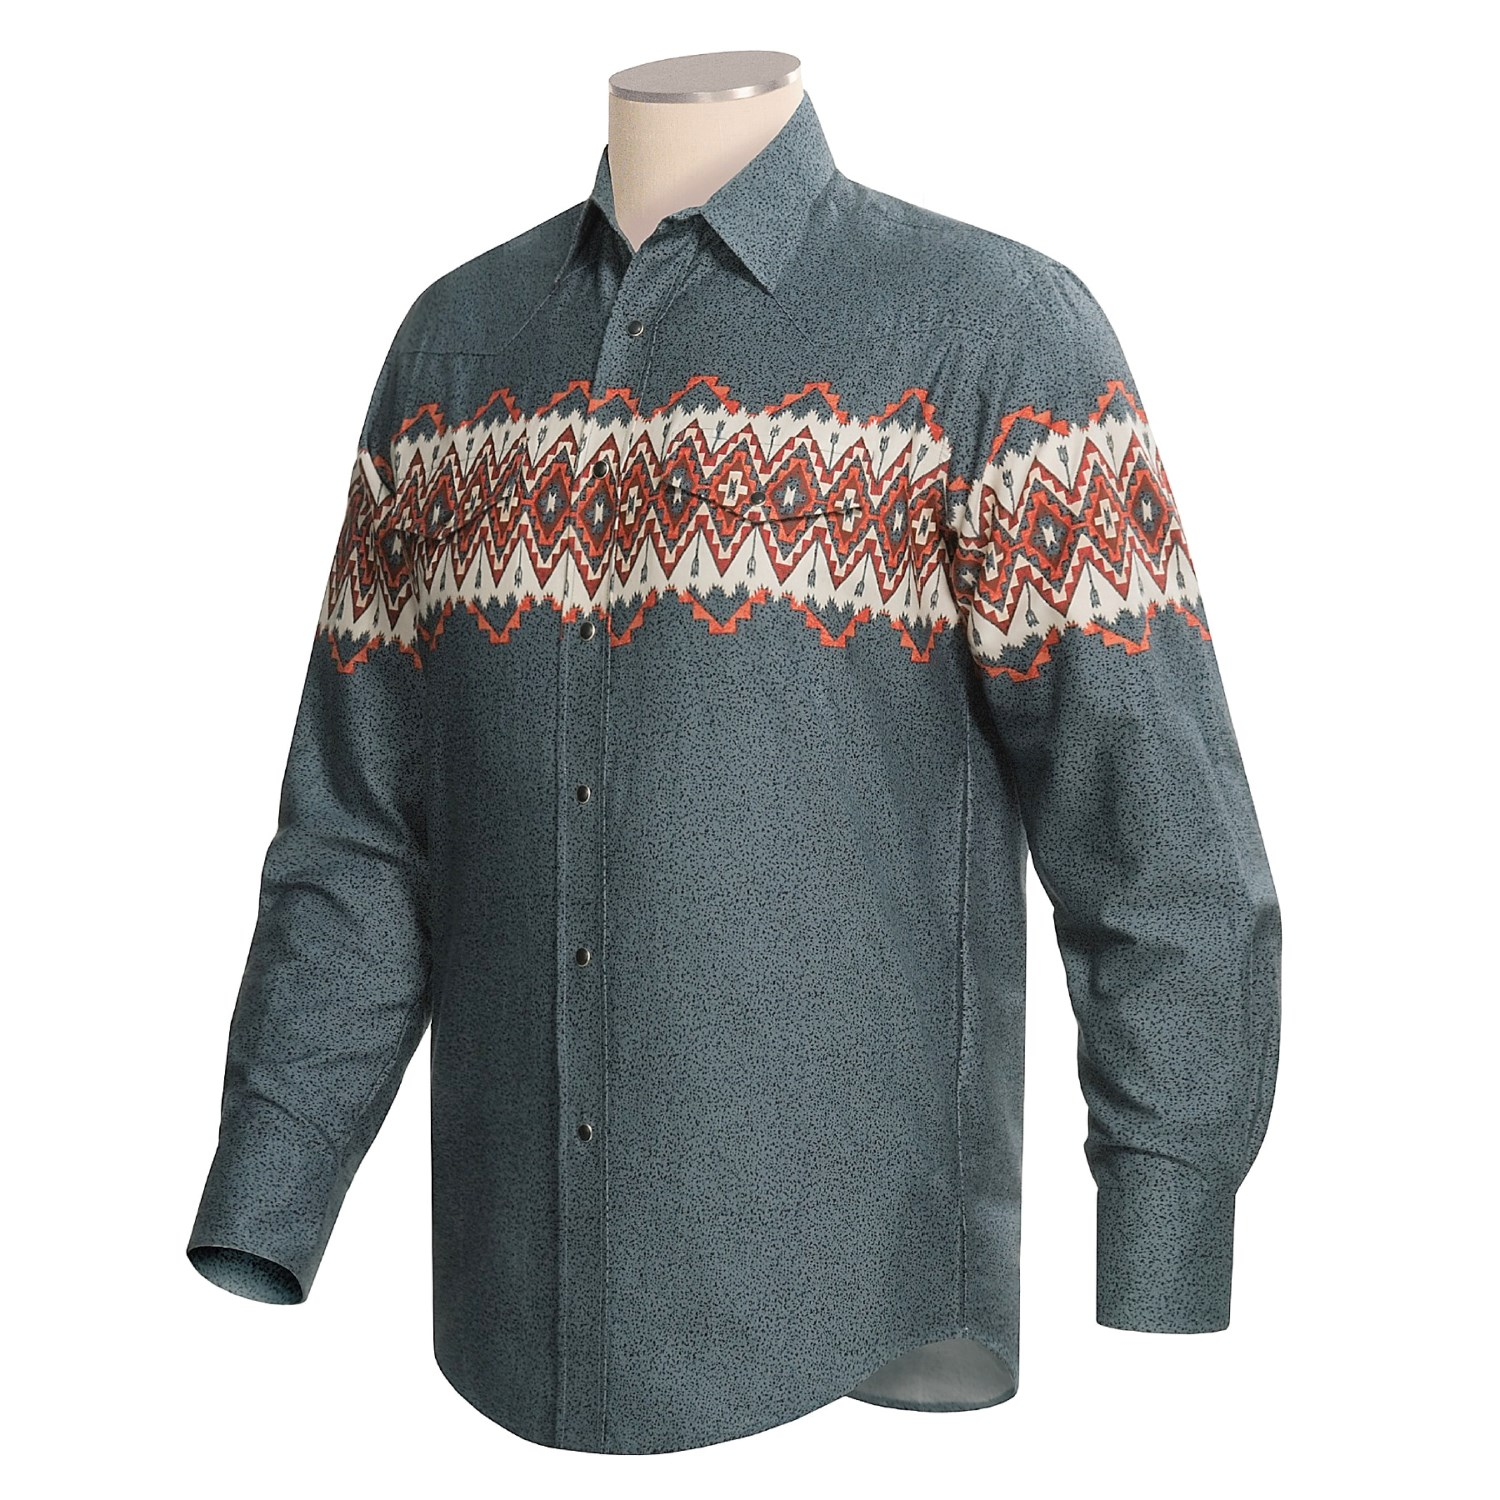 Find high quality Aztec Men's T-Shirts at CafePress. Shop a large selection of custom t-shirts, longsleeves, sweatshirts and more. TOP. Get Exclusive Offers: Thanks. We'll keep you posted! You're set for email updates from CafePress. Check your Inbox for exclusive savings and the latest scoop.